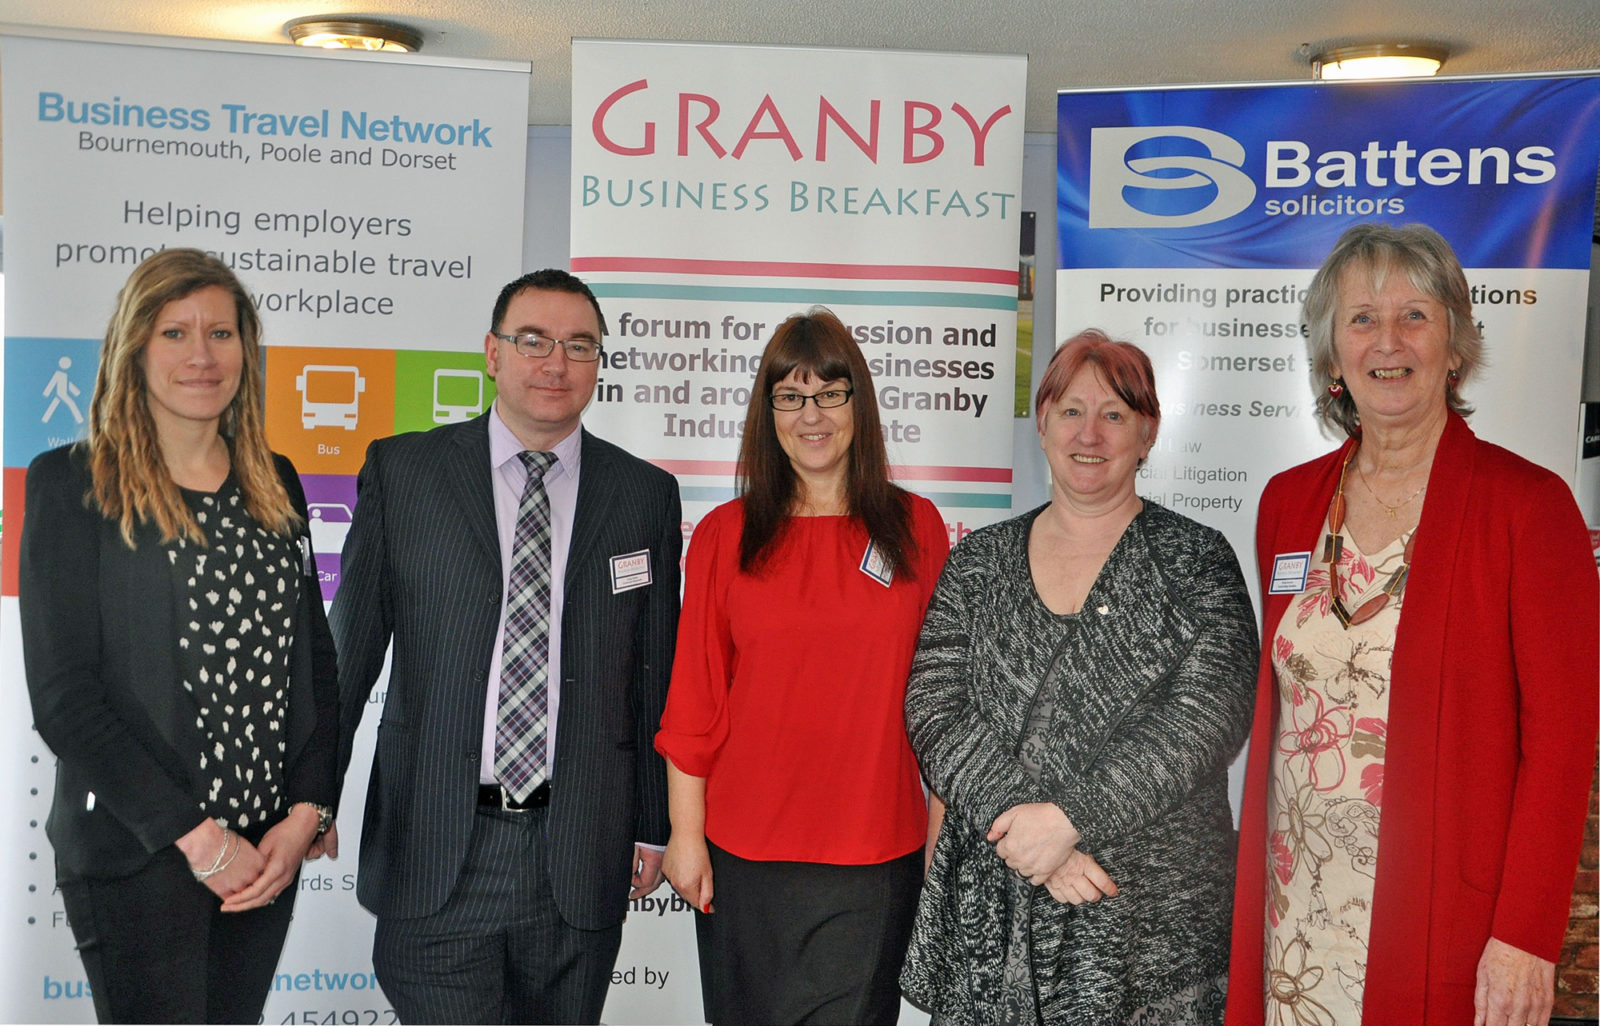 Battens Solicitors, Granby Business Breakfast, Weymotuh and Portland Chamber of Commerce